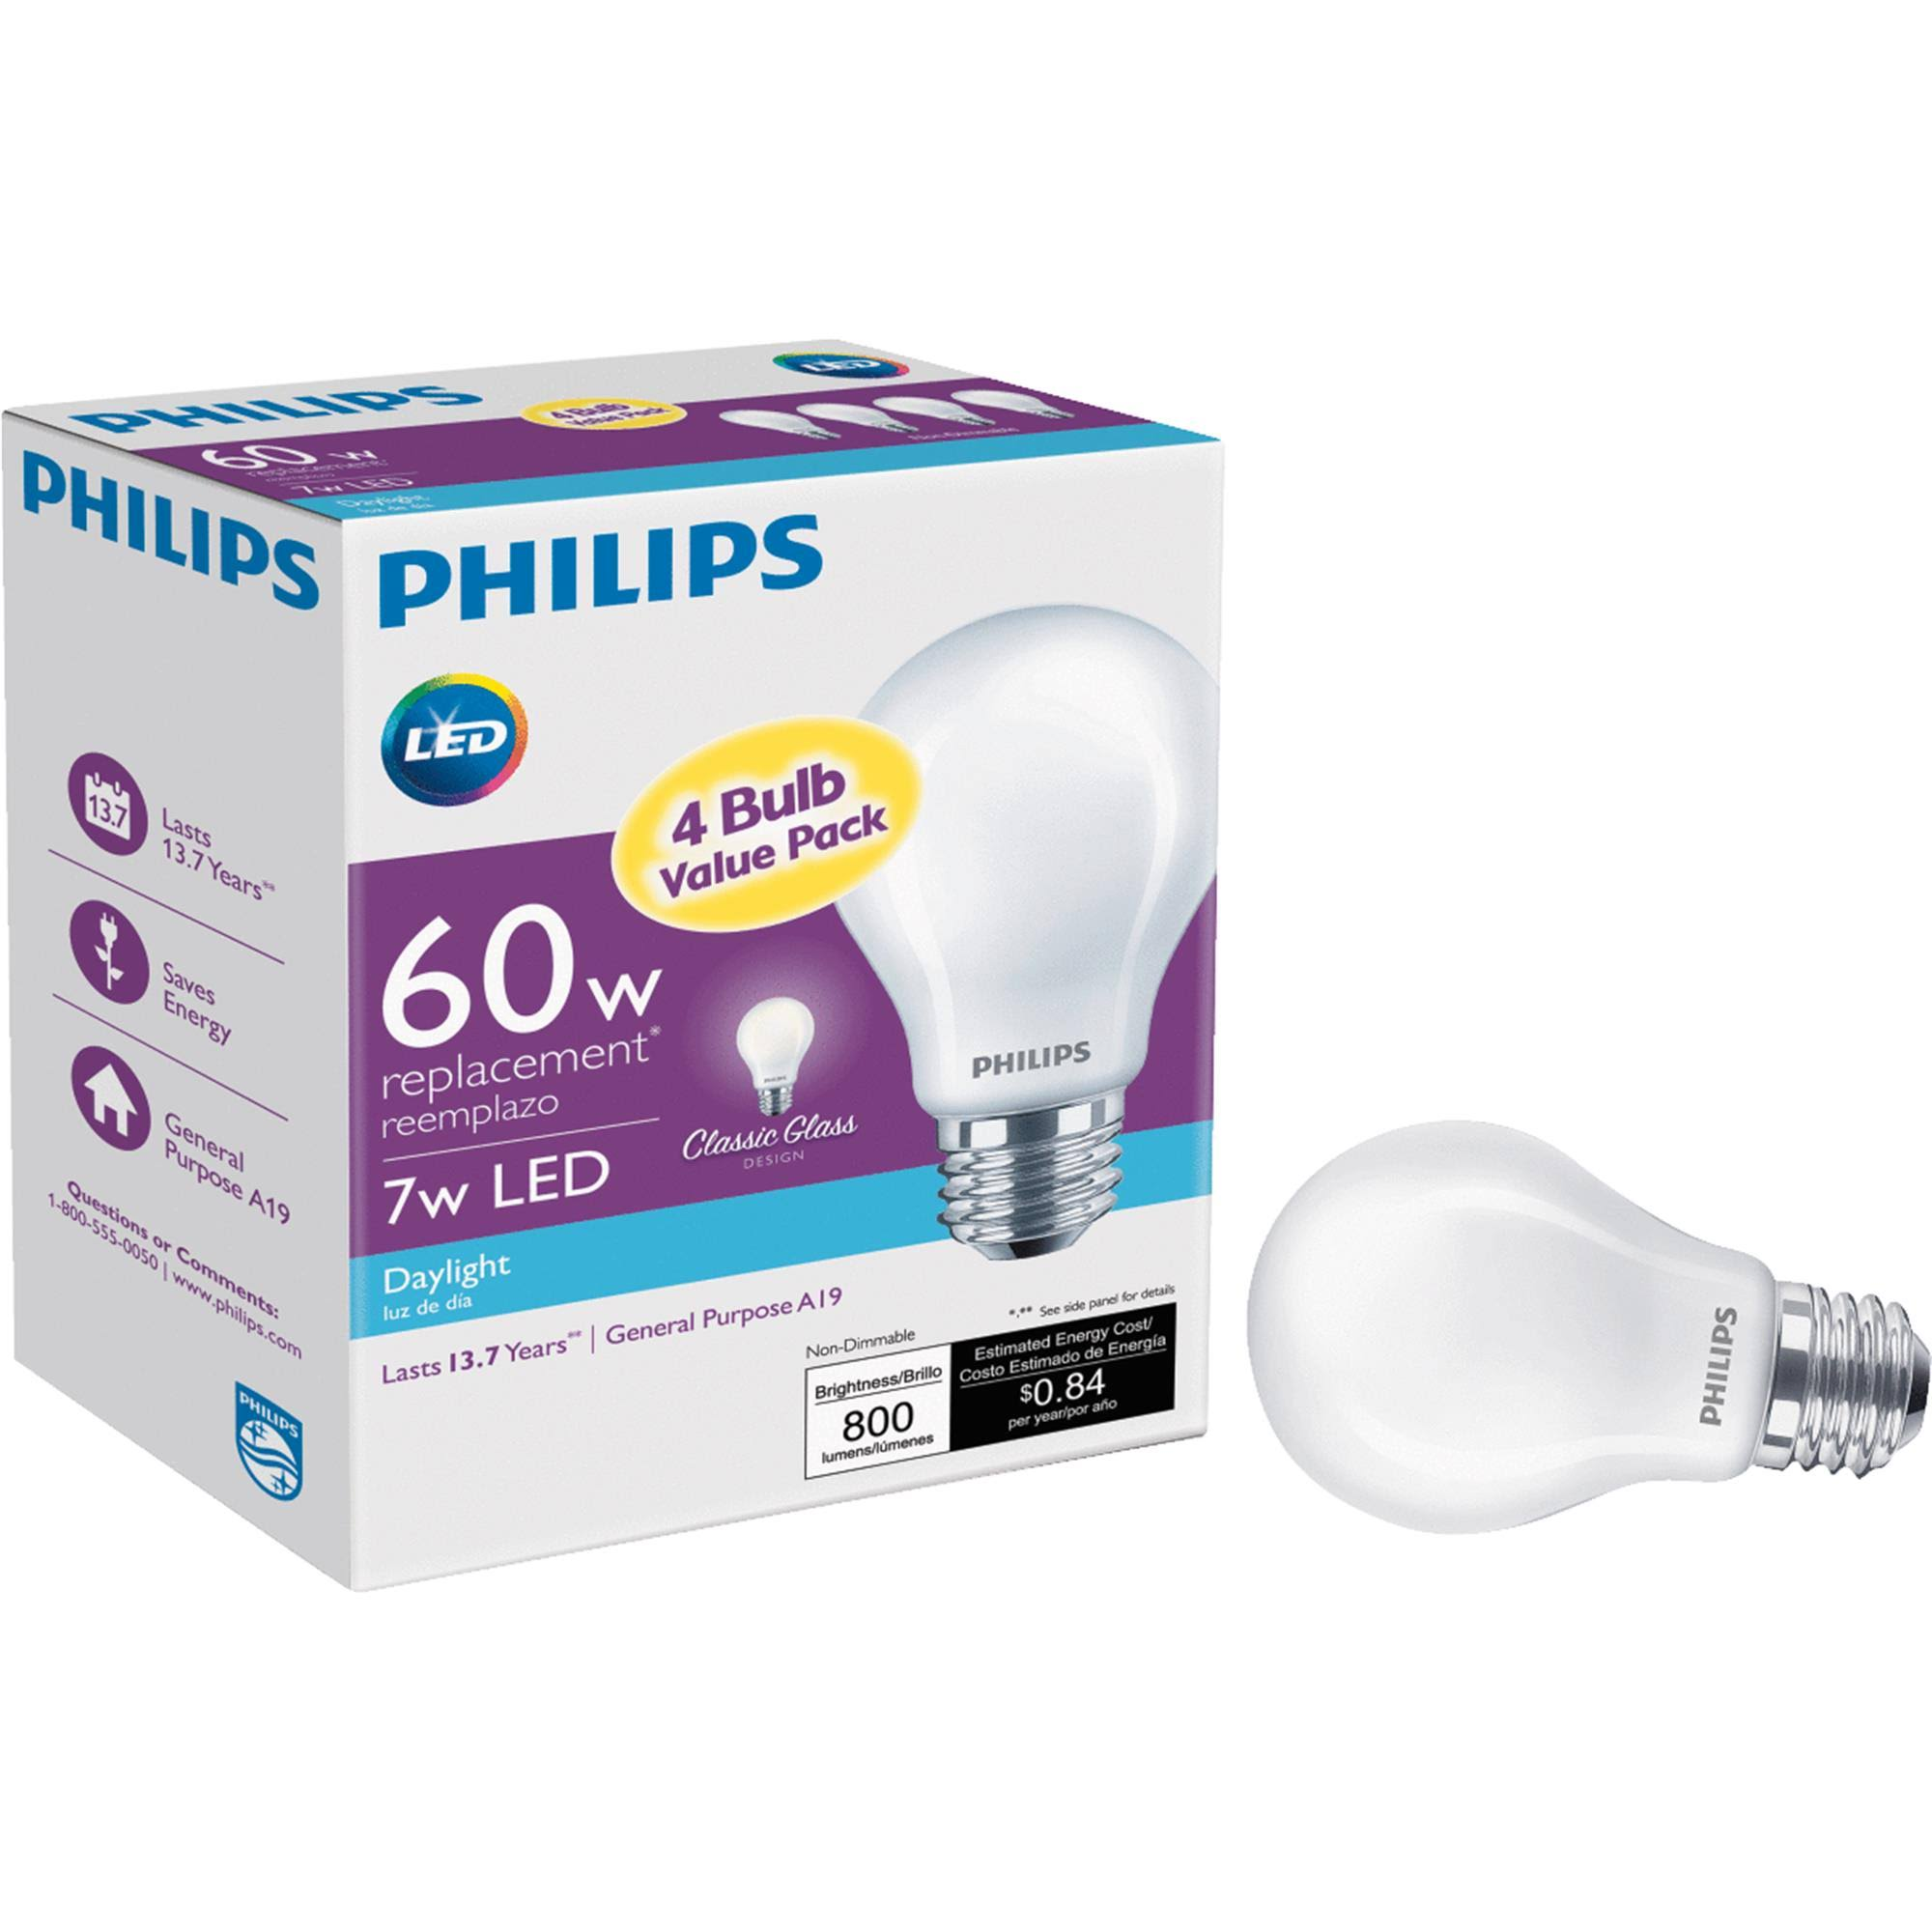 Philips A19 Medium LED Light Bulb - 469825